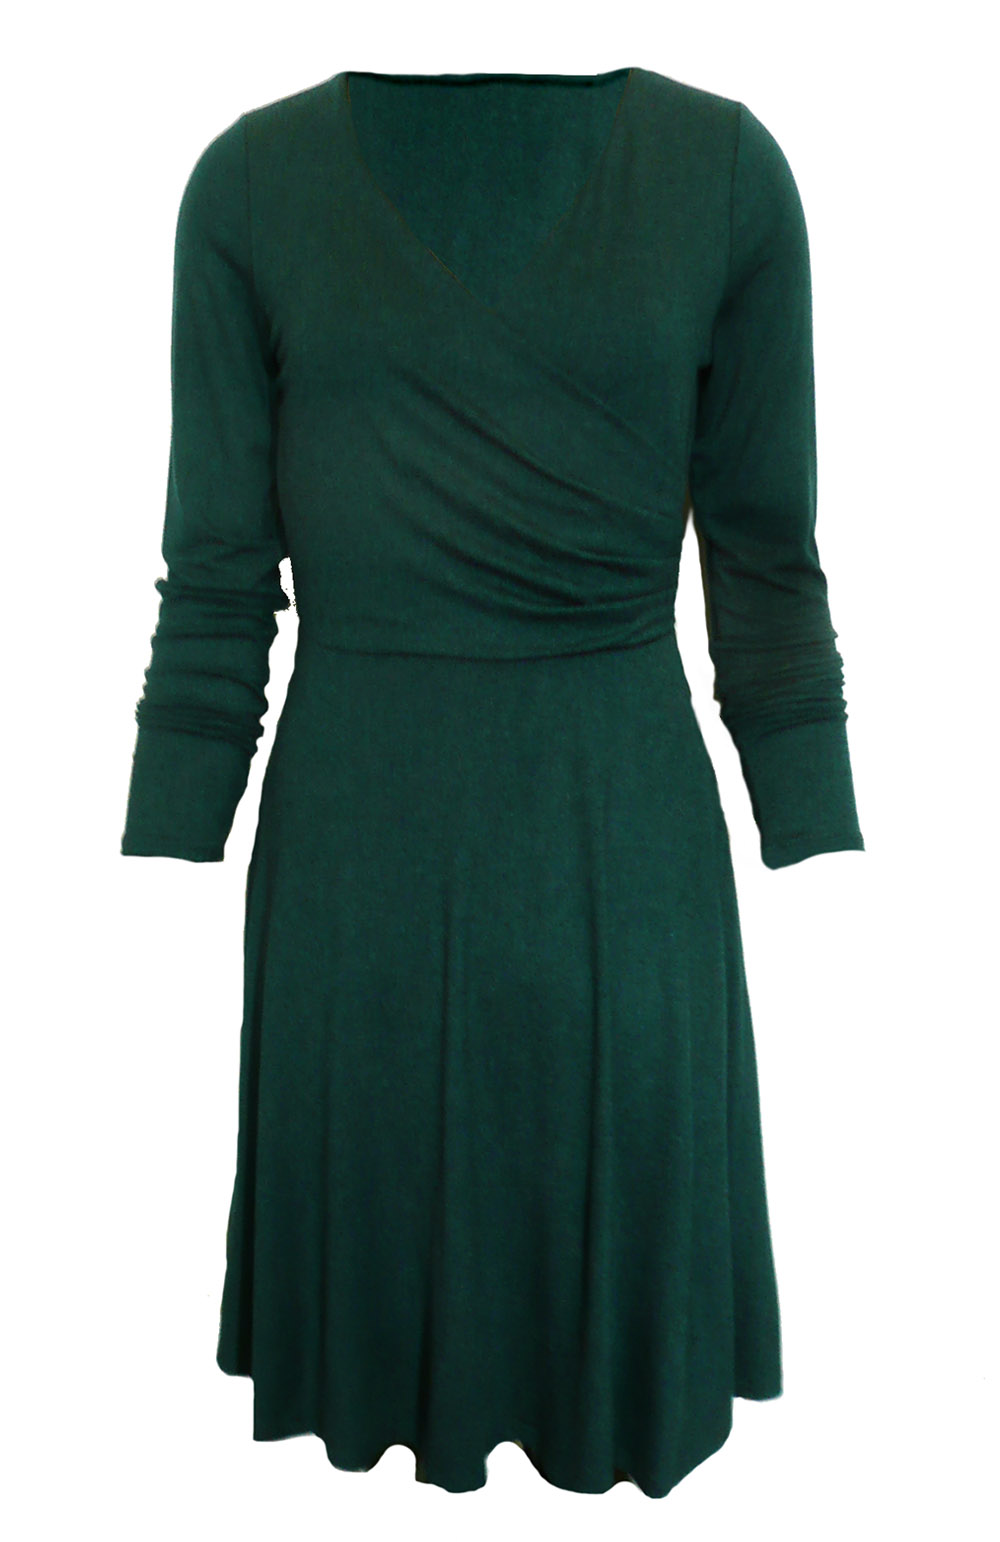 dress green wrap.jpg